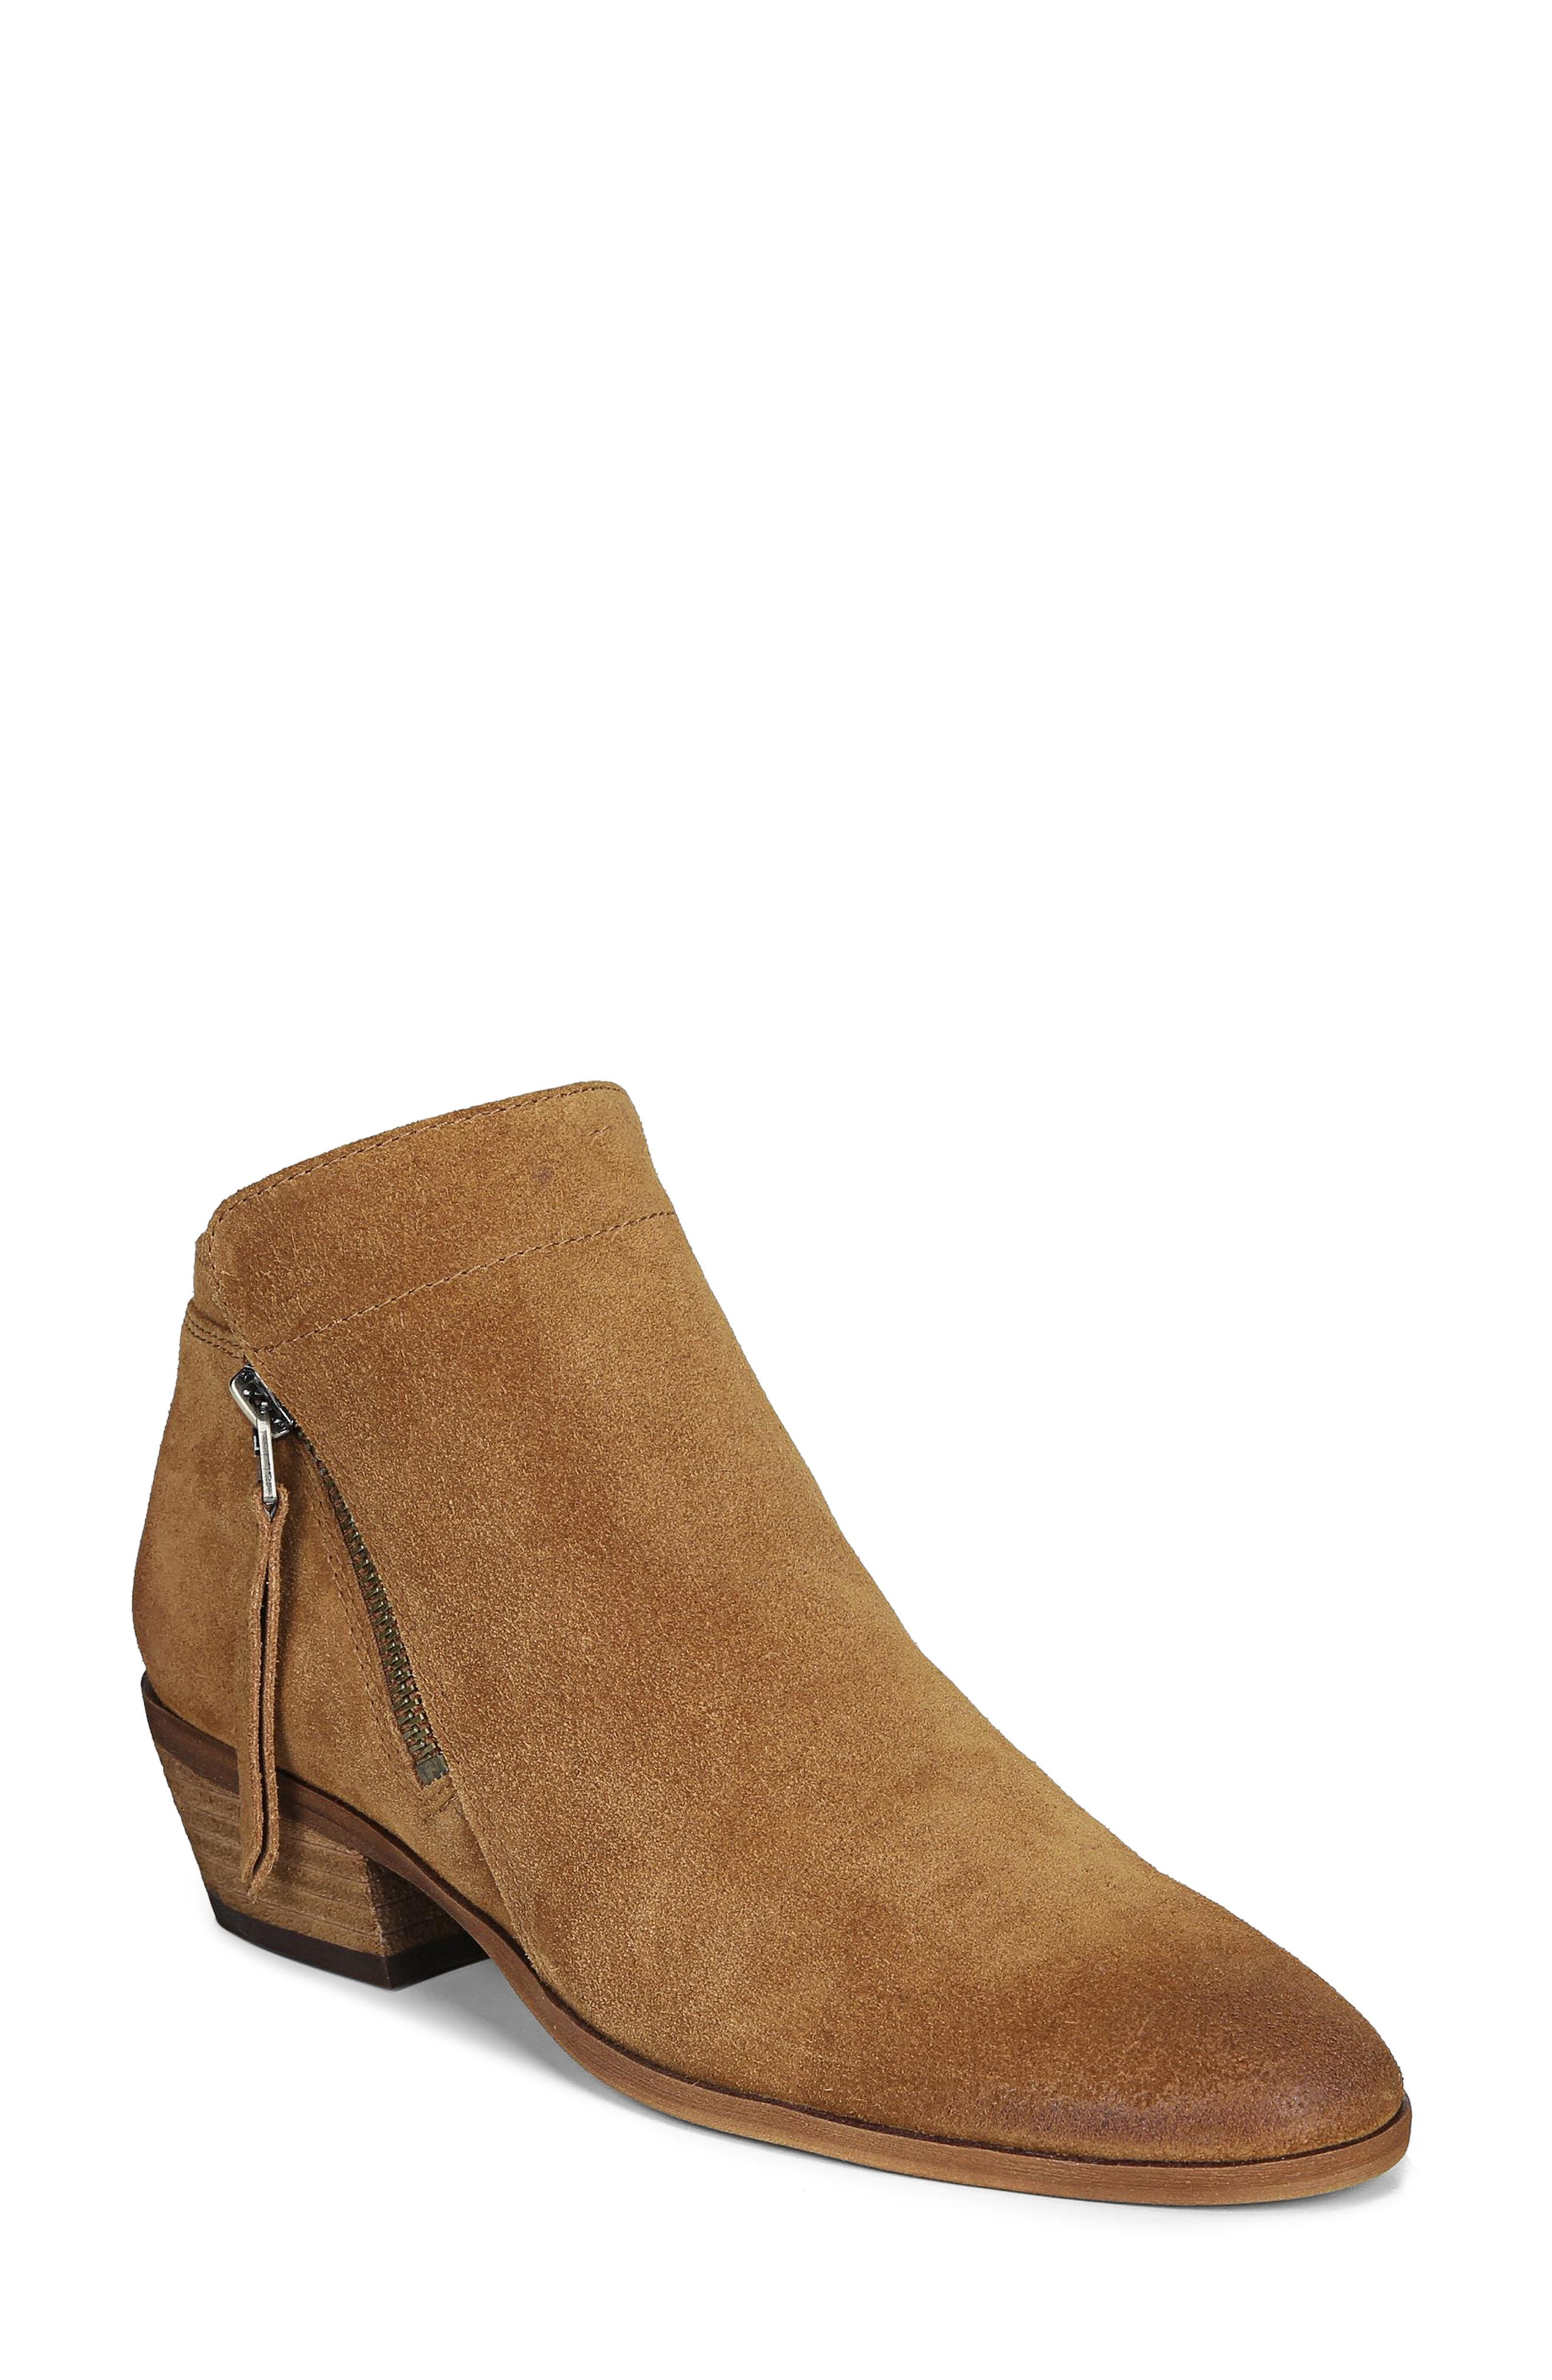 Sam Edelman Packer Bootie